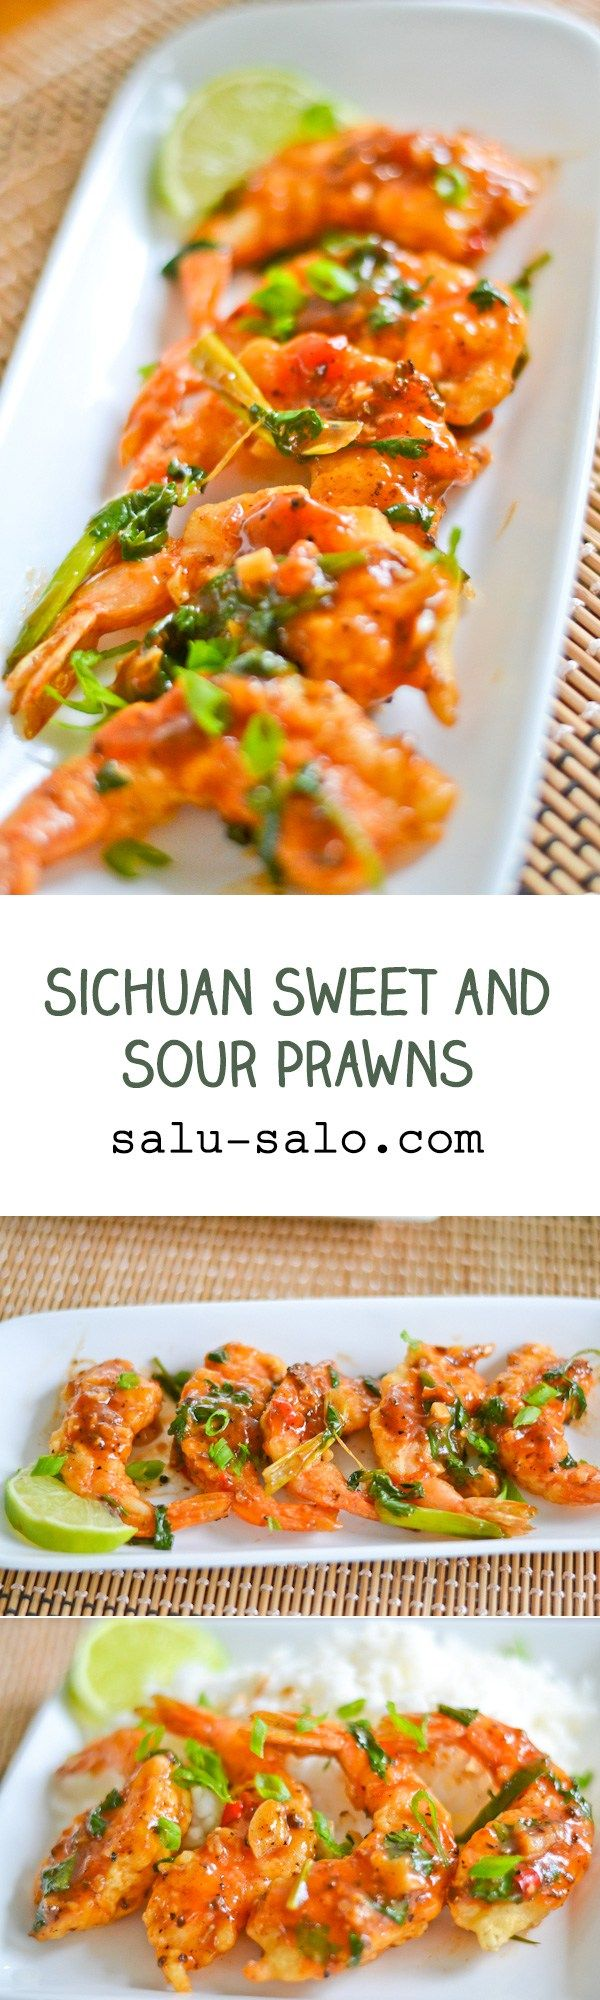 In this Sichuan Sweet and Sour Prawn recipe, prawns are first dipped in a batter, fried and then coated with a Sichuan style sweet and sour sauce.